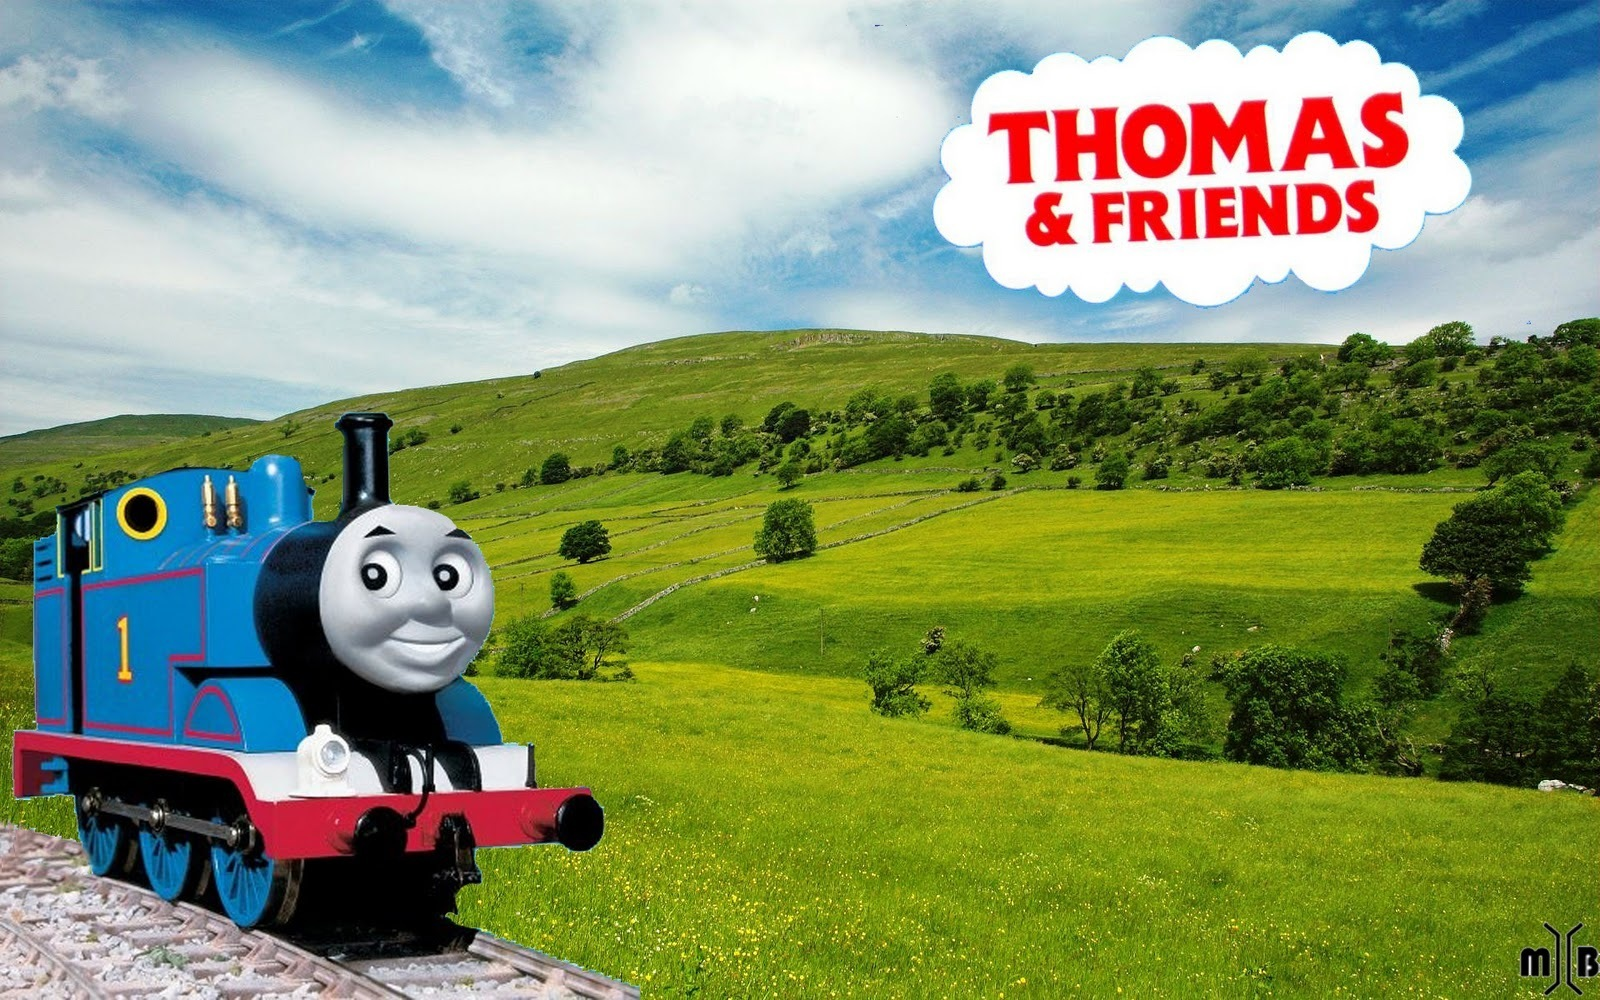 Thomas And Friends Wallpaper   Thomas And Friends Wallpaper 21400813 1600x1000